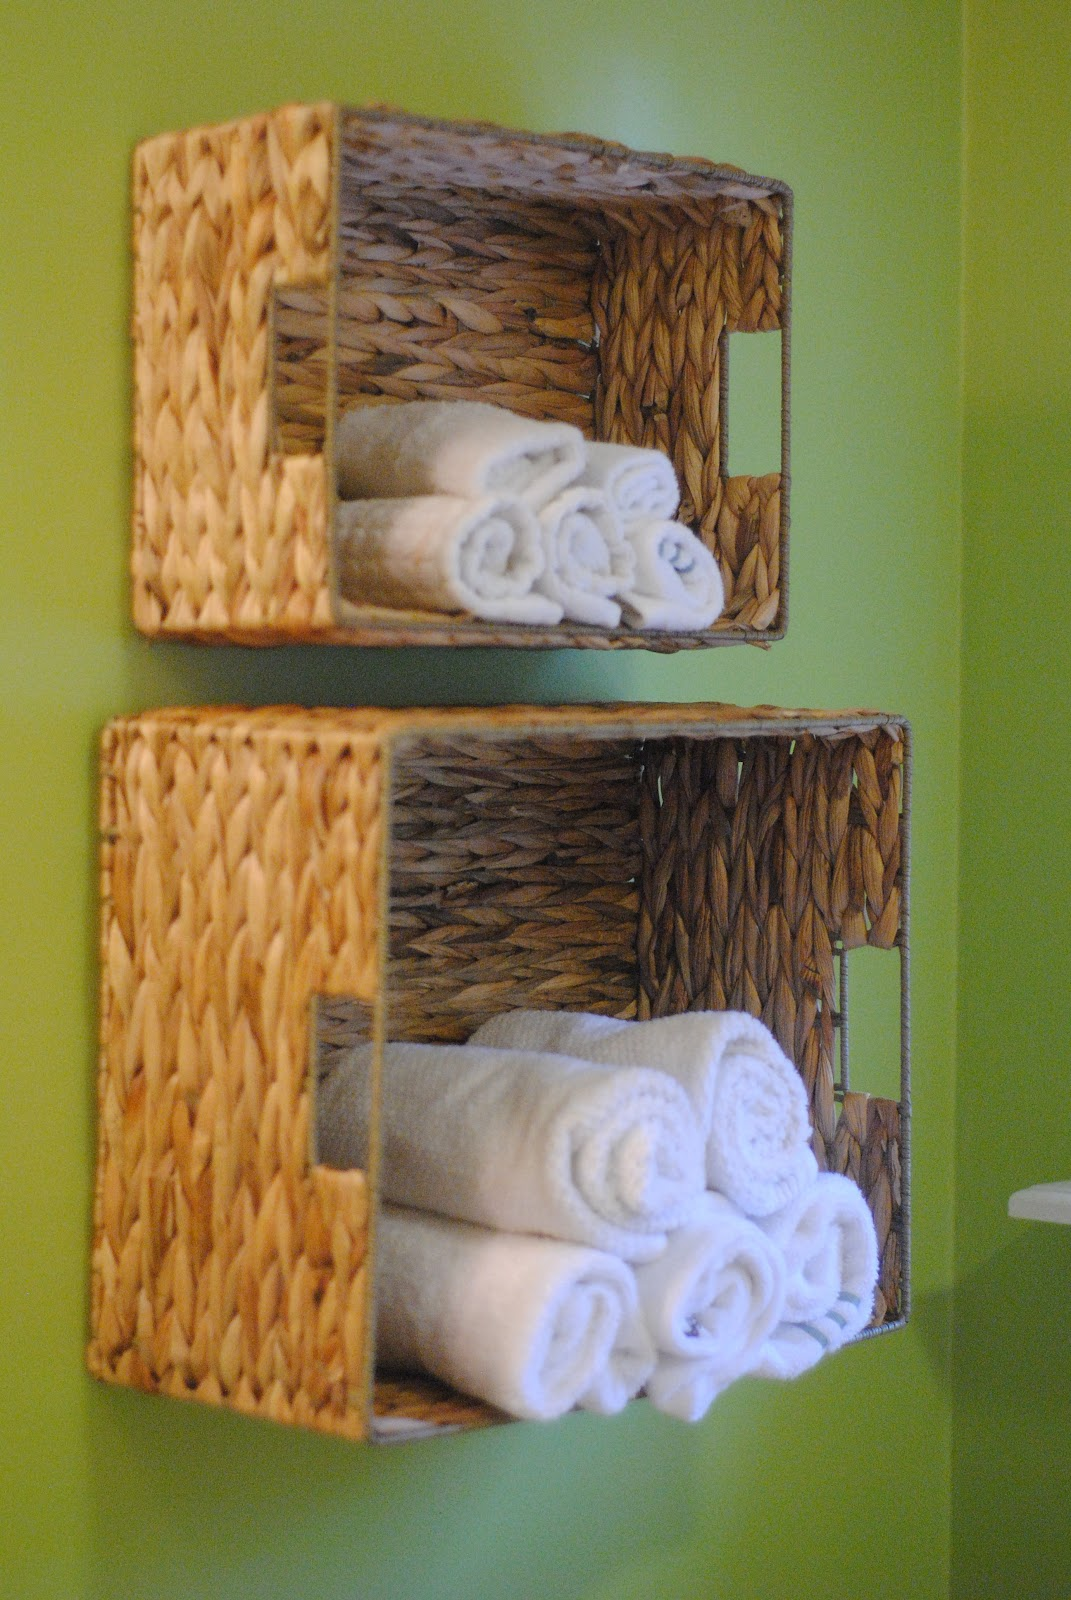 Bathroom wall storage baskets - Easy Bathroom Towel Storage Idea